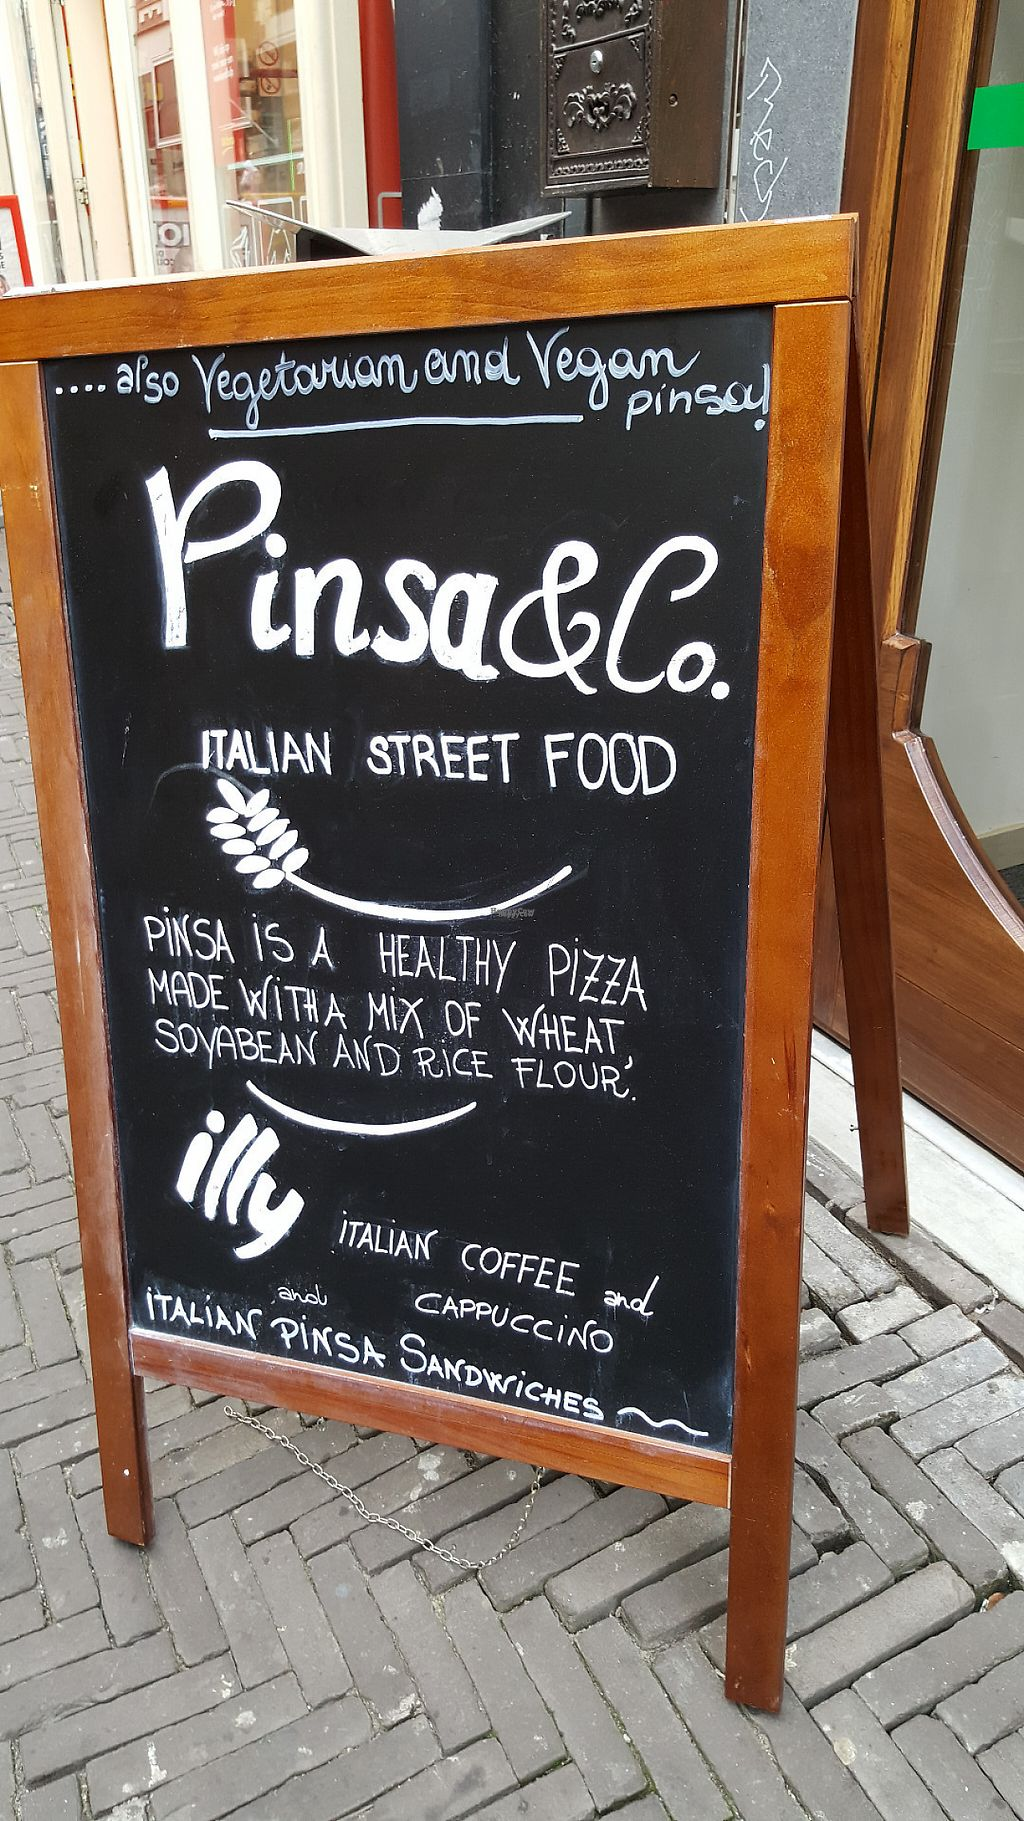 """Photo of Pinsa & Co  by <a href=""""/members/profile/AlanDrummer"""">AlanDrummer</a> <br/>Vegan Base tasty <br/> April 6, 2017  - <a href='/contact/abuse/image/89399/245276'>Report</a>"""